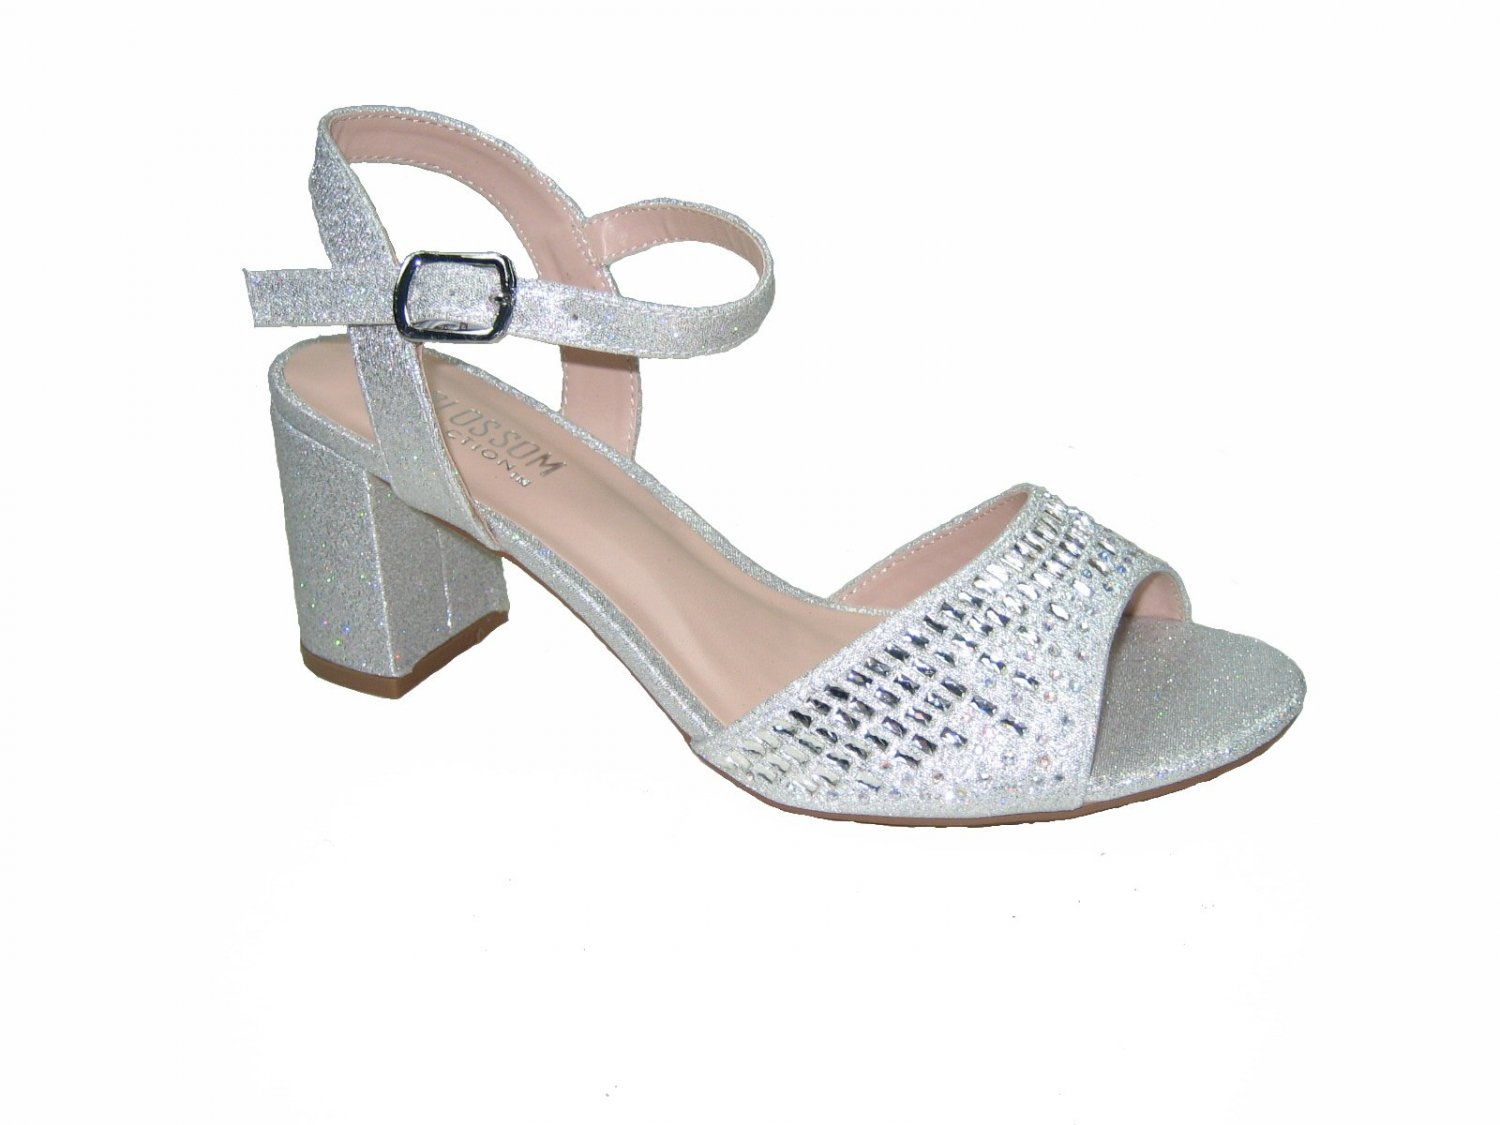 Blossom amber-9 strappy silver sparkle shimmer 3 inch nude heel party sandals size 5.5